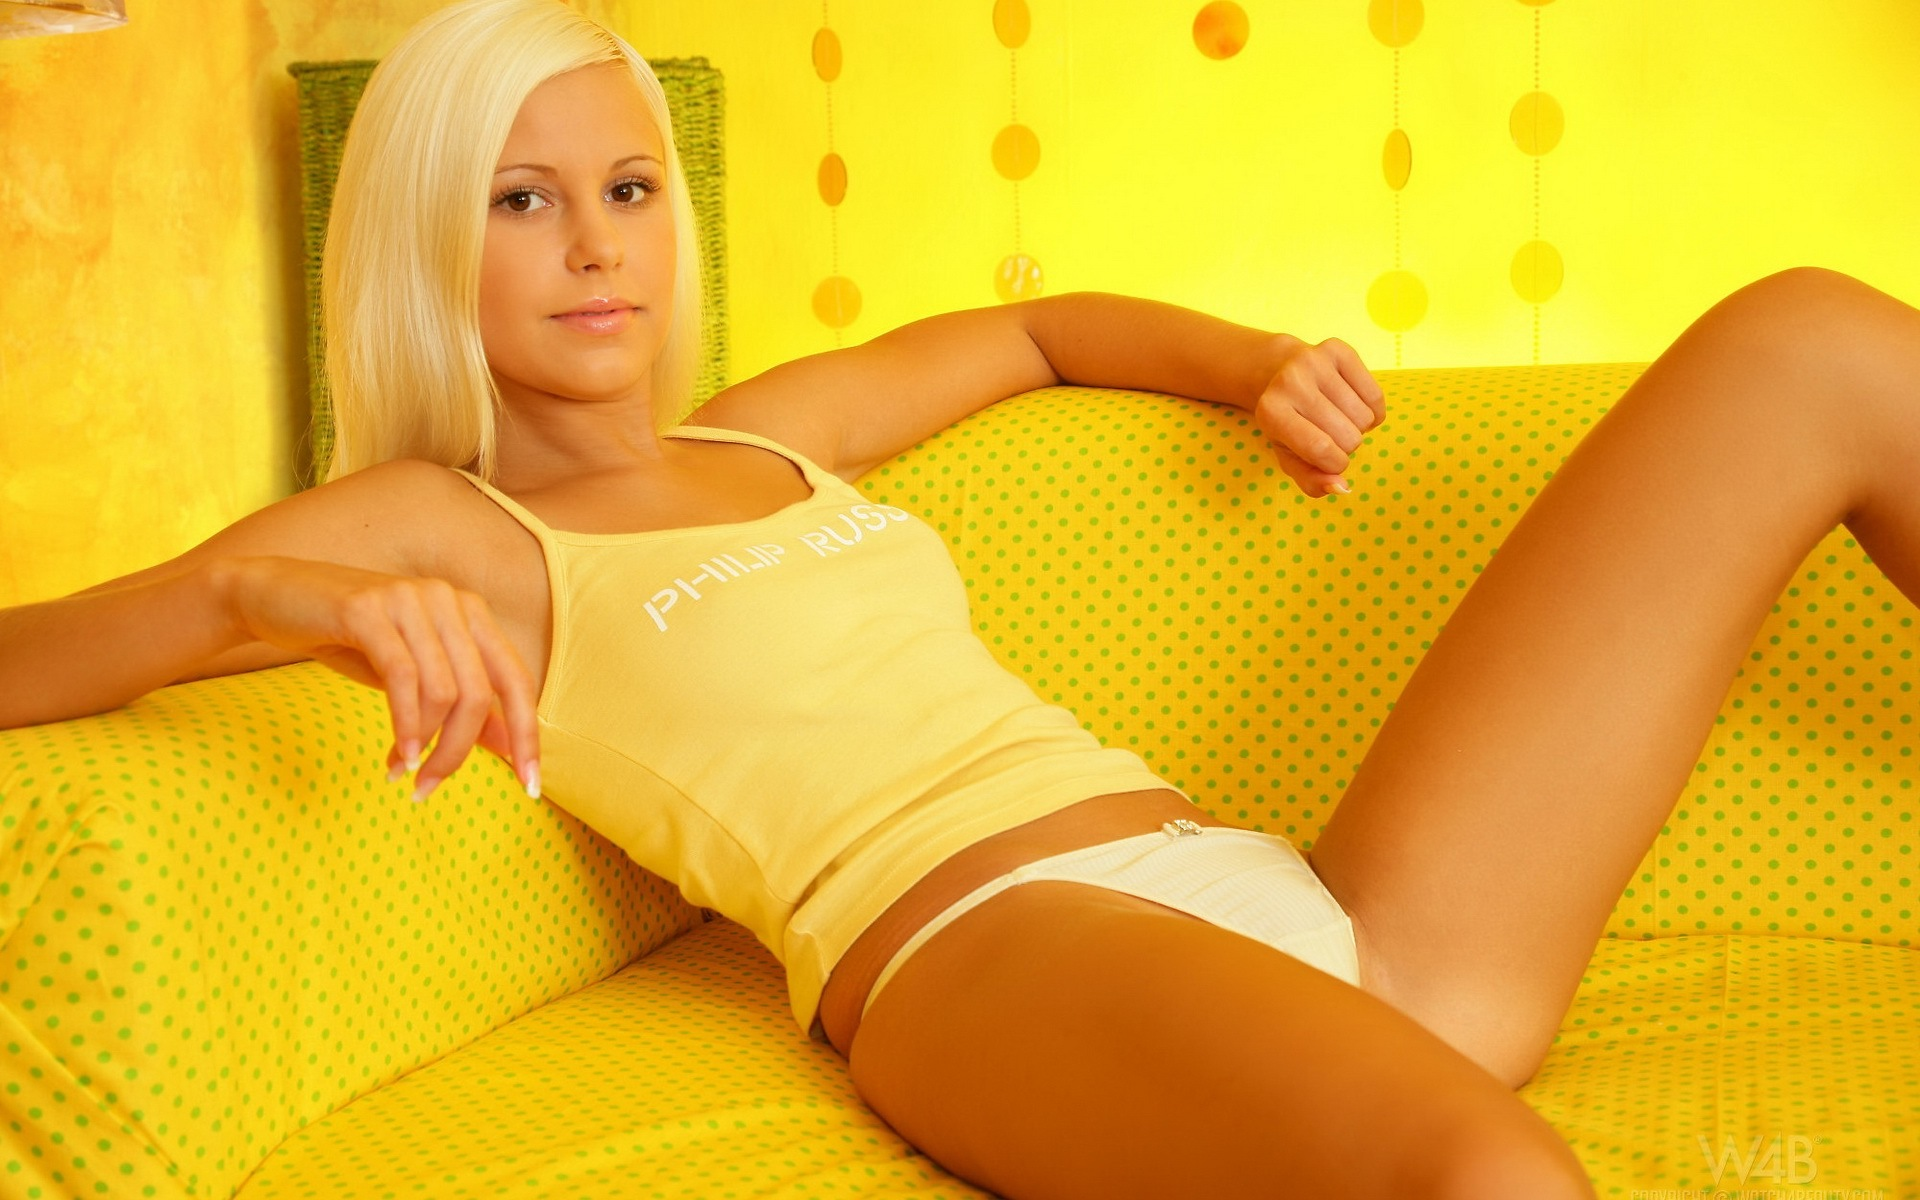 Lola Myluv blondes woman HD Wallpaper